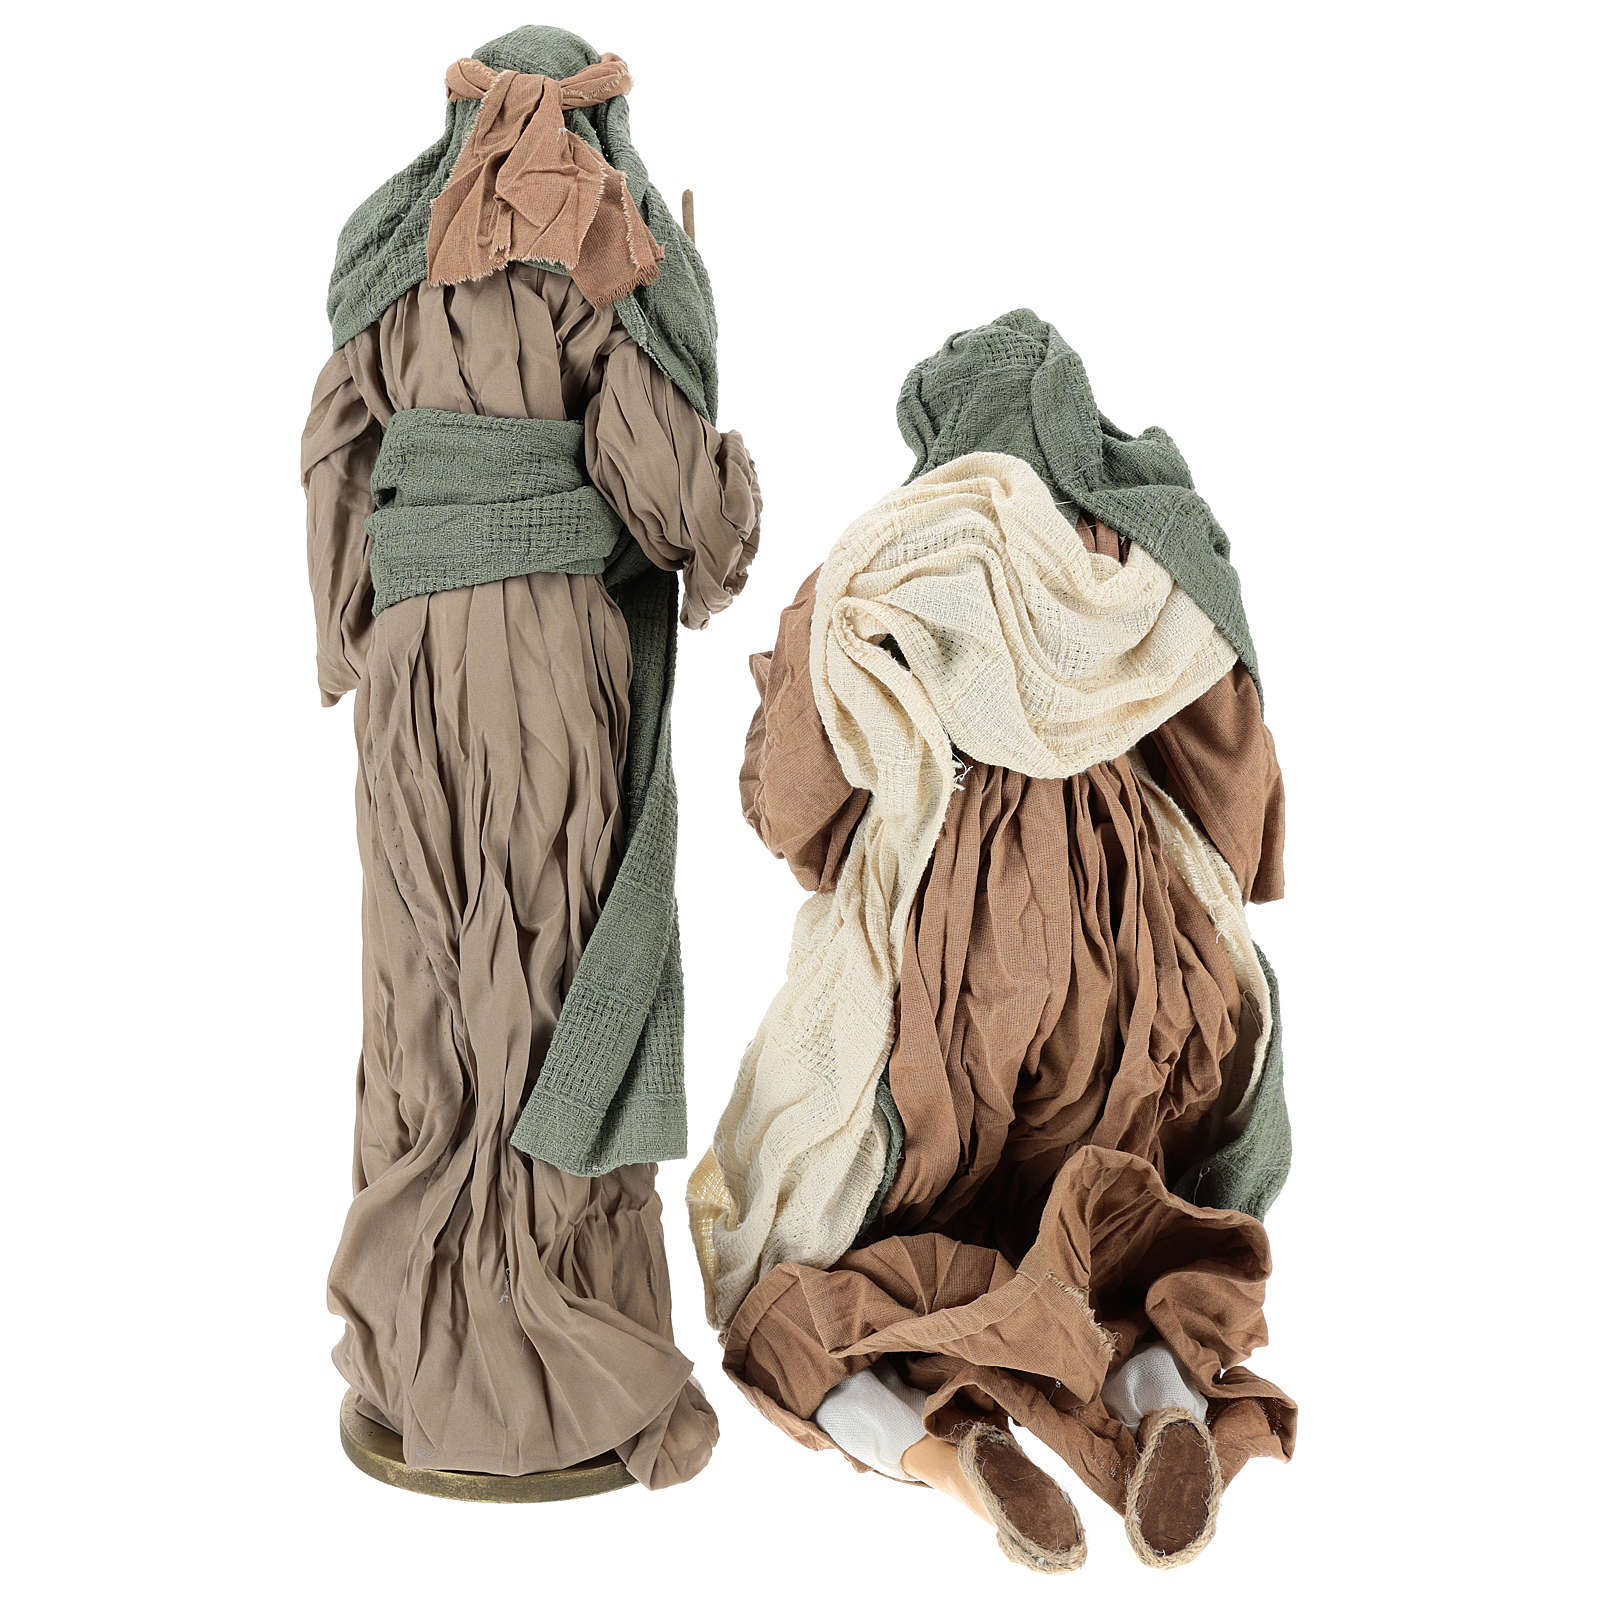 Nativity 55 cm in Shabby Chic style with clothes made of green and brown gauze 3